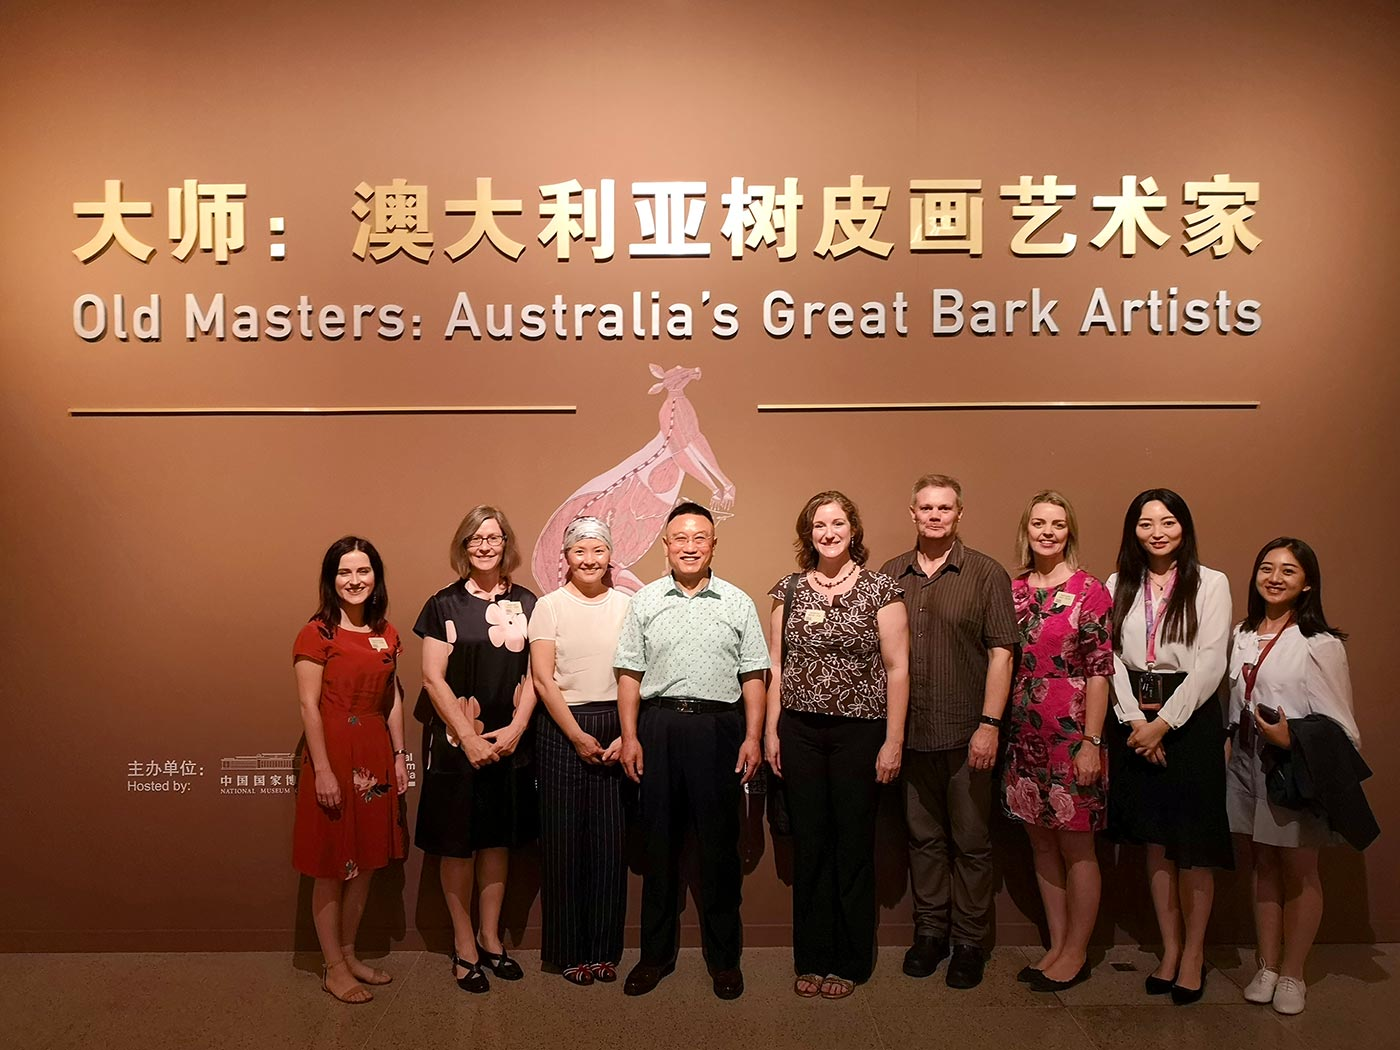 A group of people in front of a gallery wall with the title 'Old Masters: Australia's Great Bark Artists' beneath its Chinese translation.